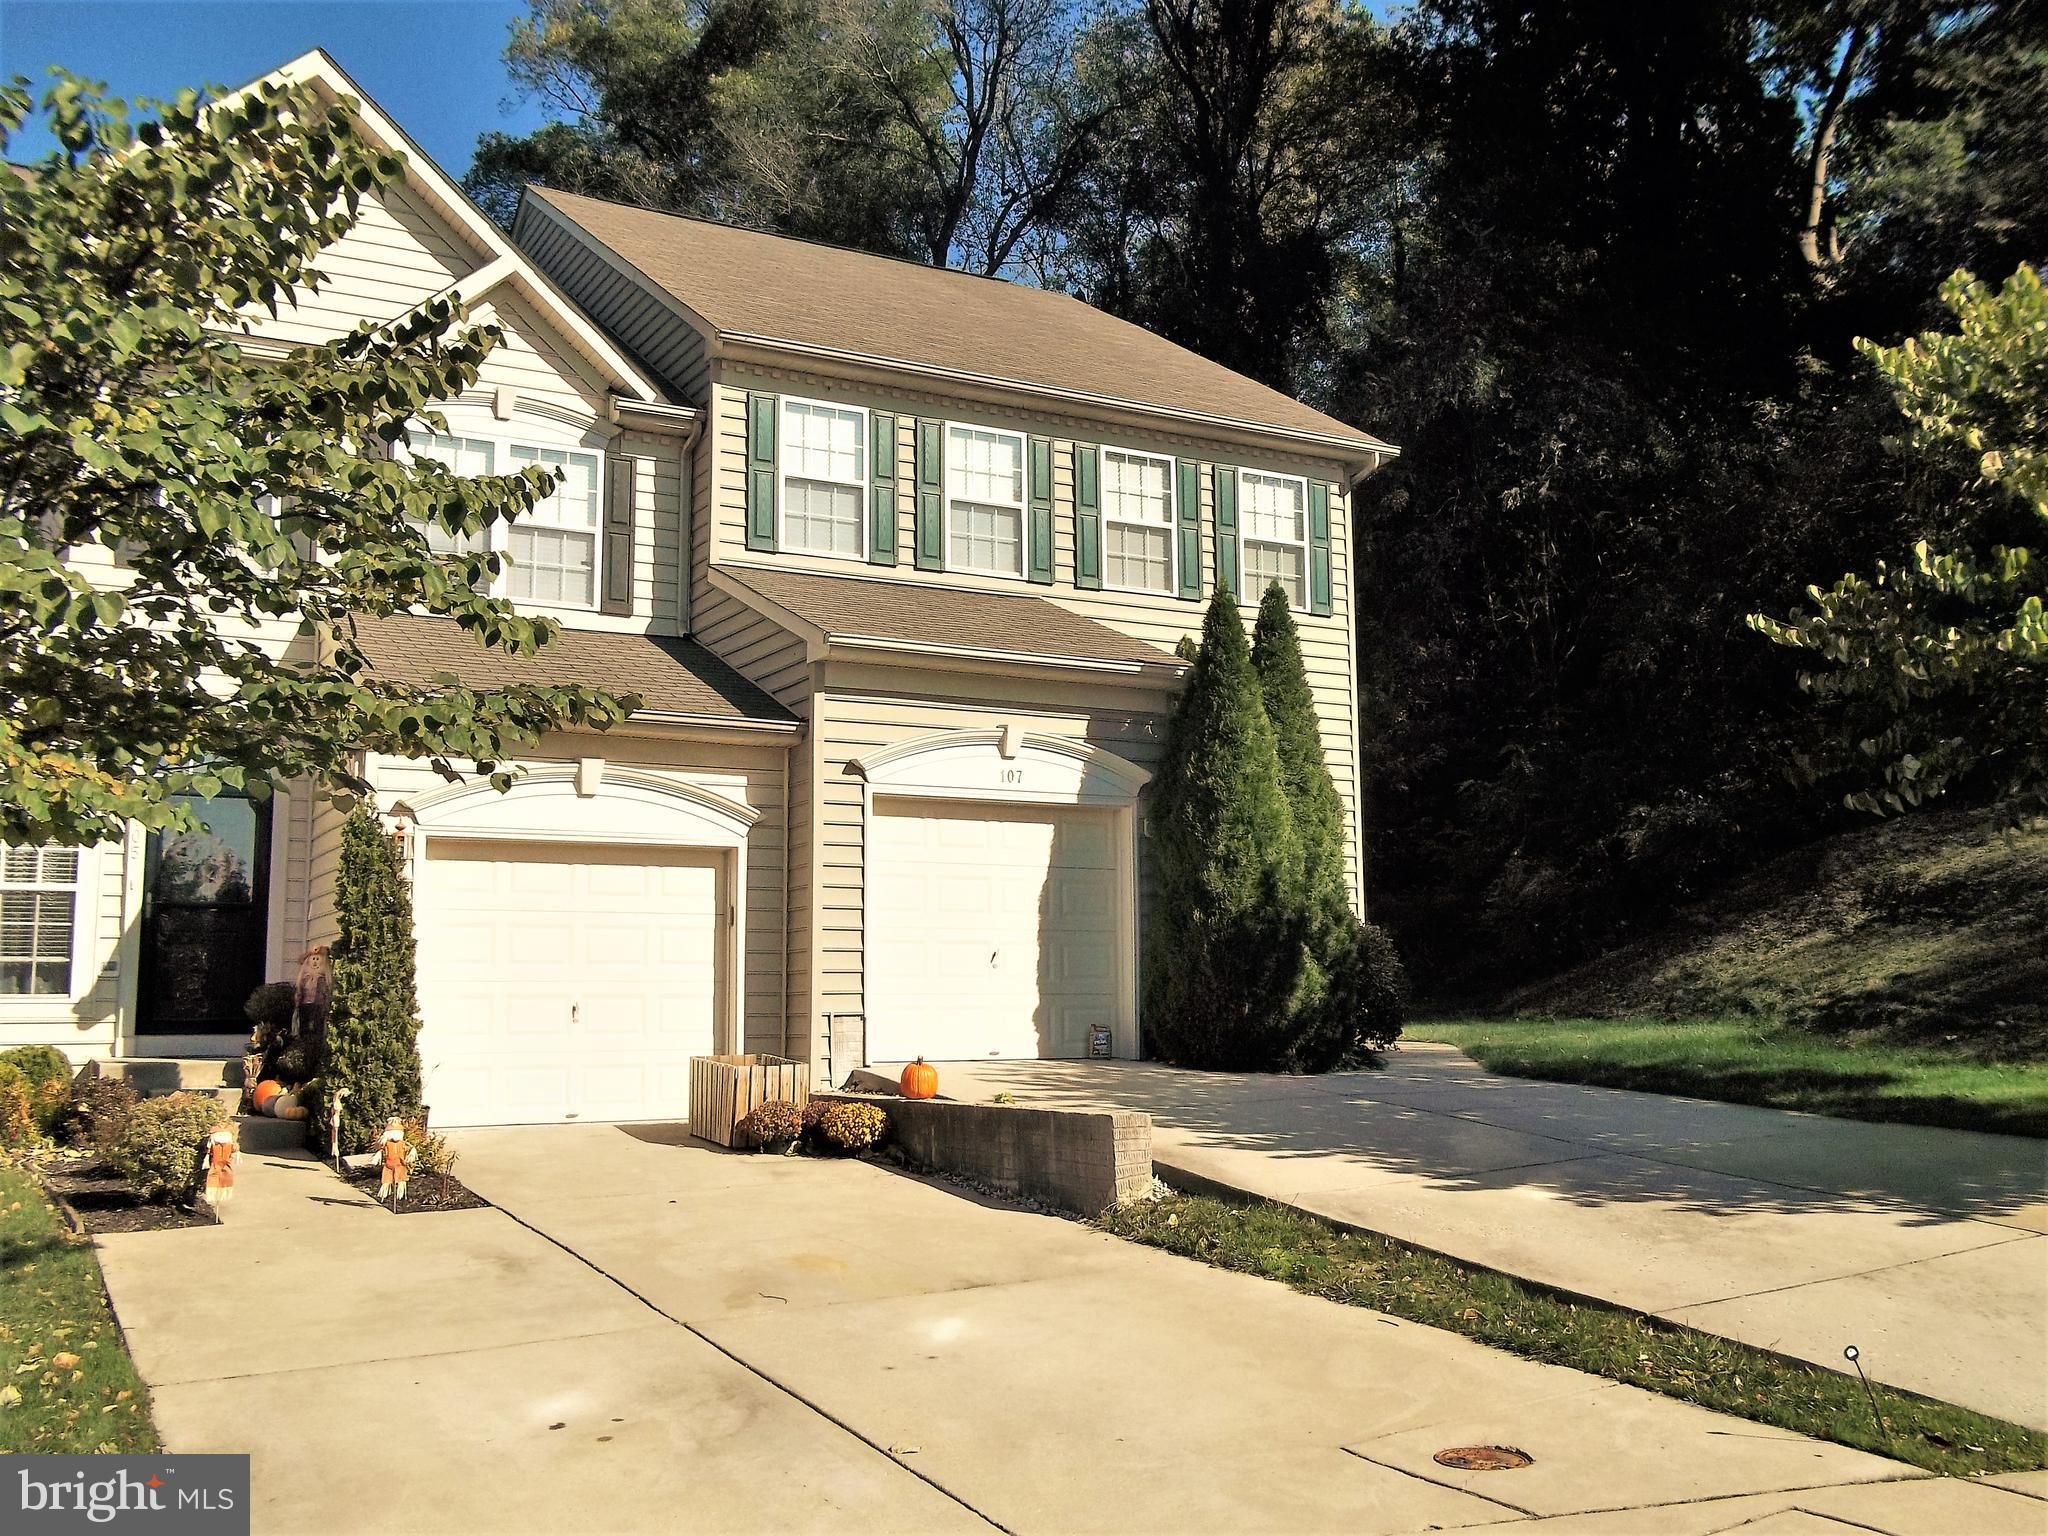 107 RUSTIC COURT, PERRYVILLE, MD 21903